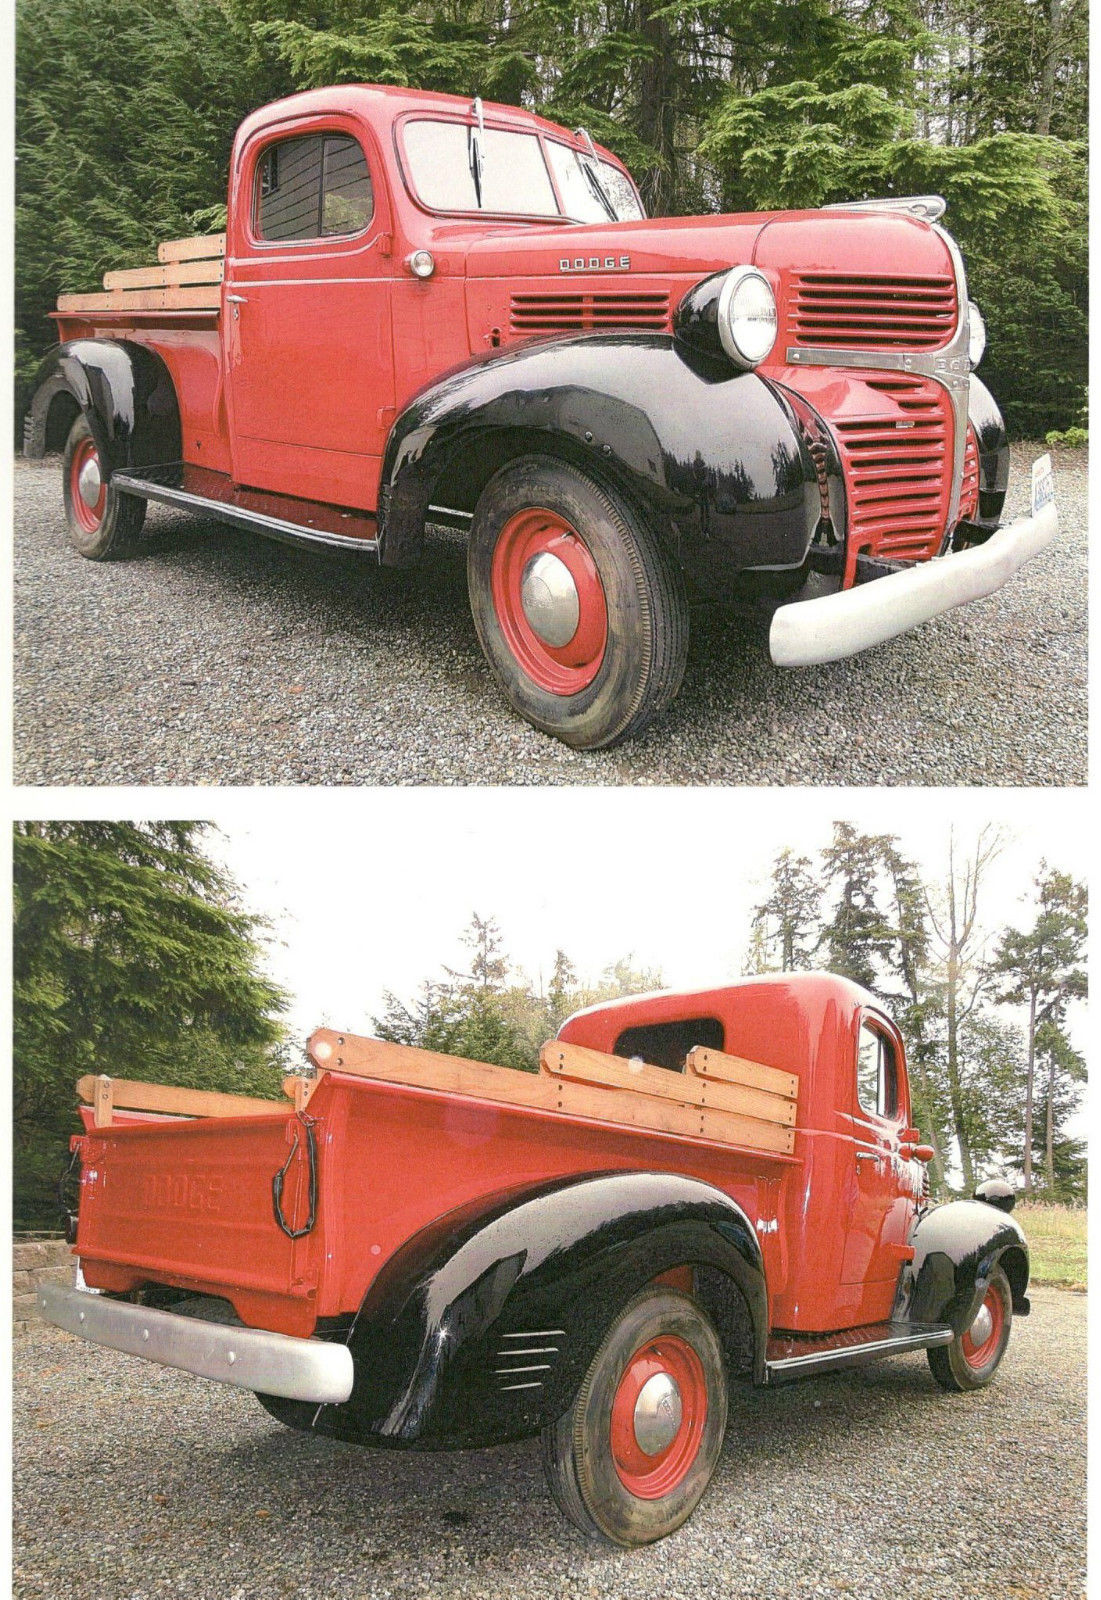 1947 dodge collector pickup truck 1 2 ton frame off restored to original classic dodge. Black Bedroom Furniture Sets. Home Design Ideas